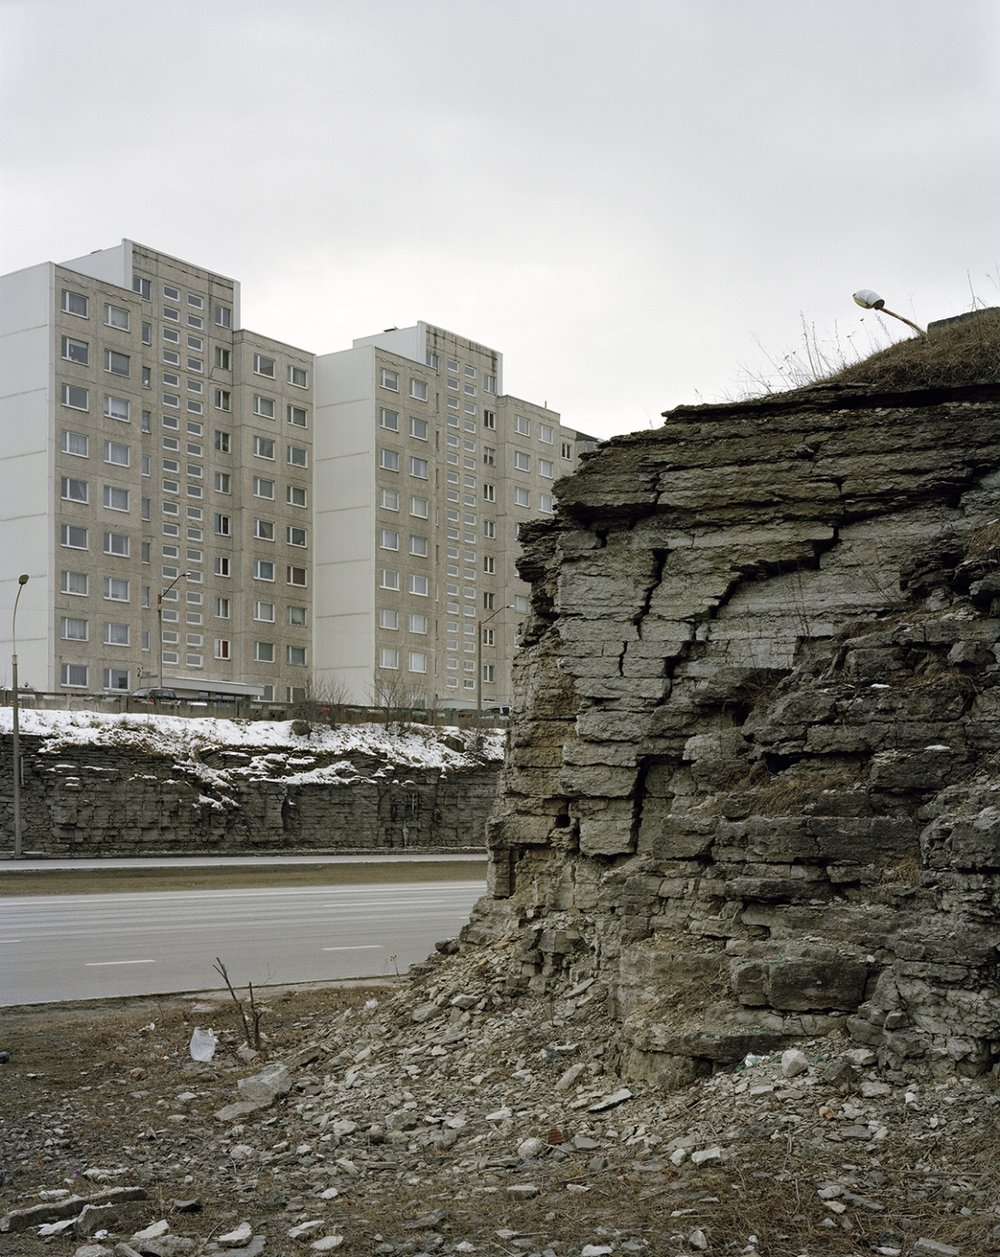 Half of all Estonia's housing was nationalized after WWII. Before the war, Estonia's standard of living and economy was similar to Finland's. Tallinn V, David Grandorge, 2016